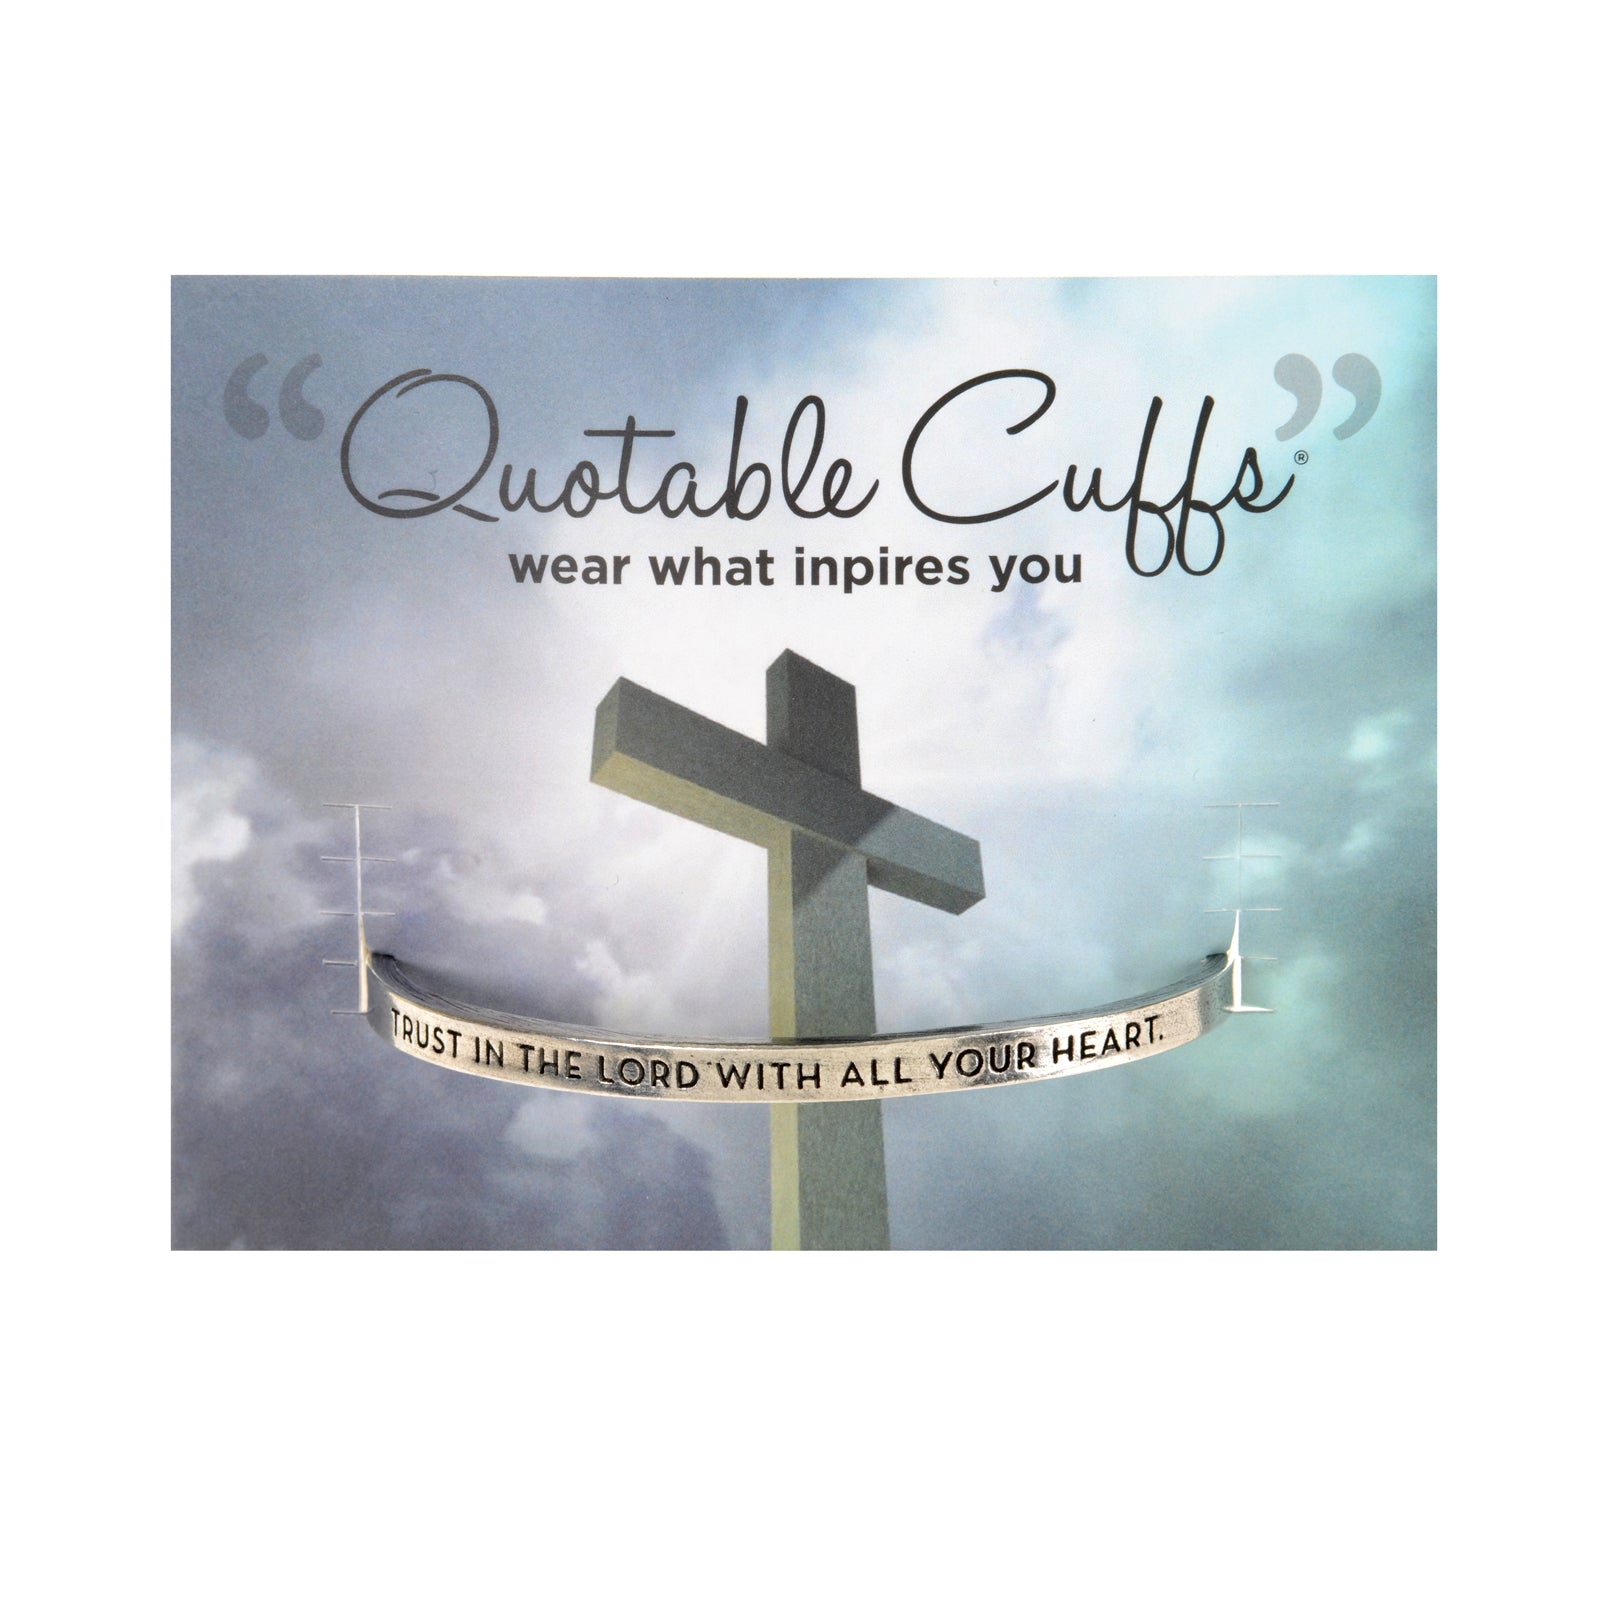 Trust in the Lord Quotable Cuff - Whitney Howard Designs